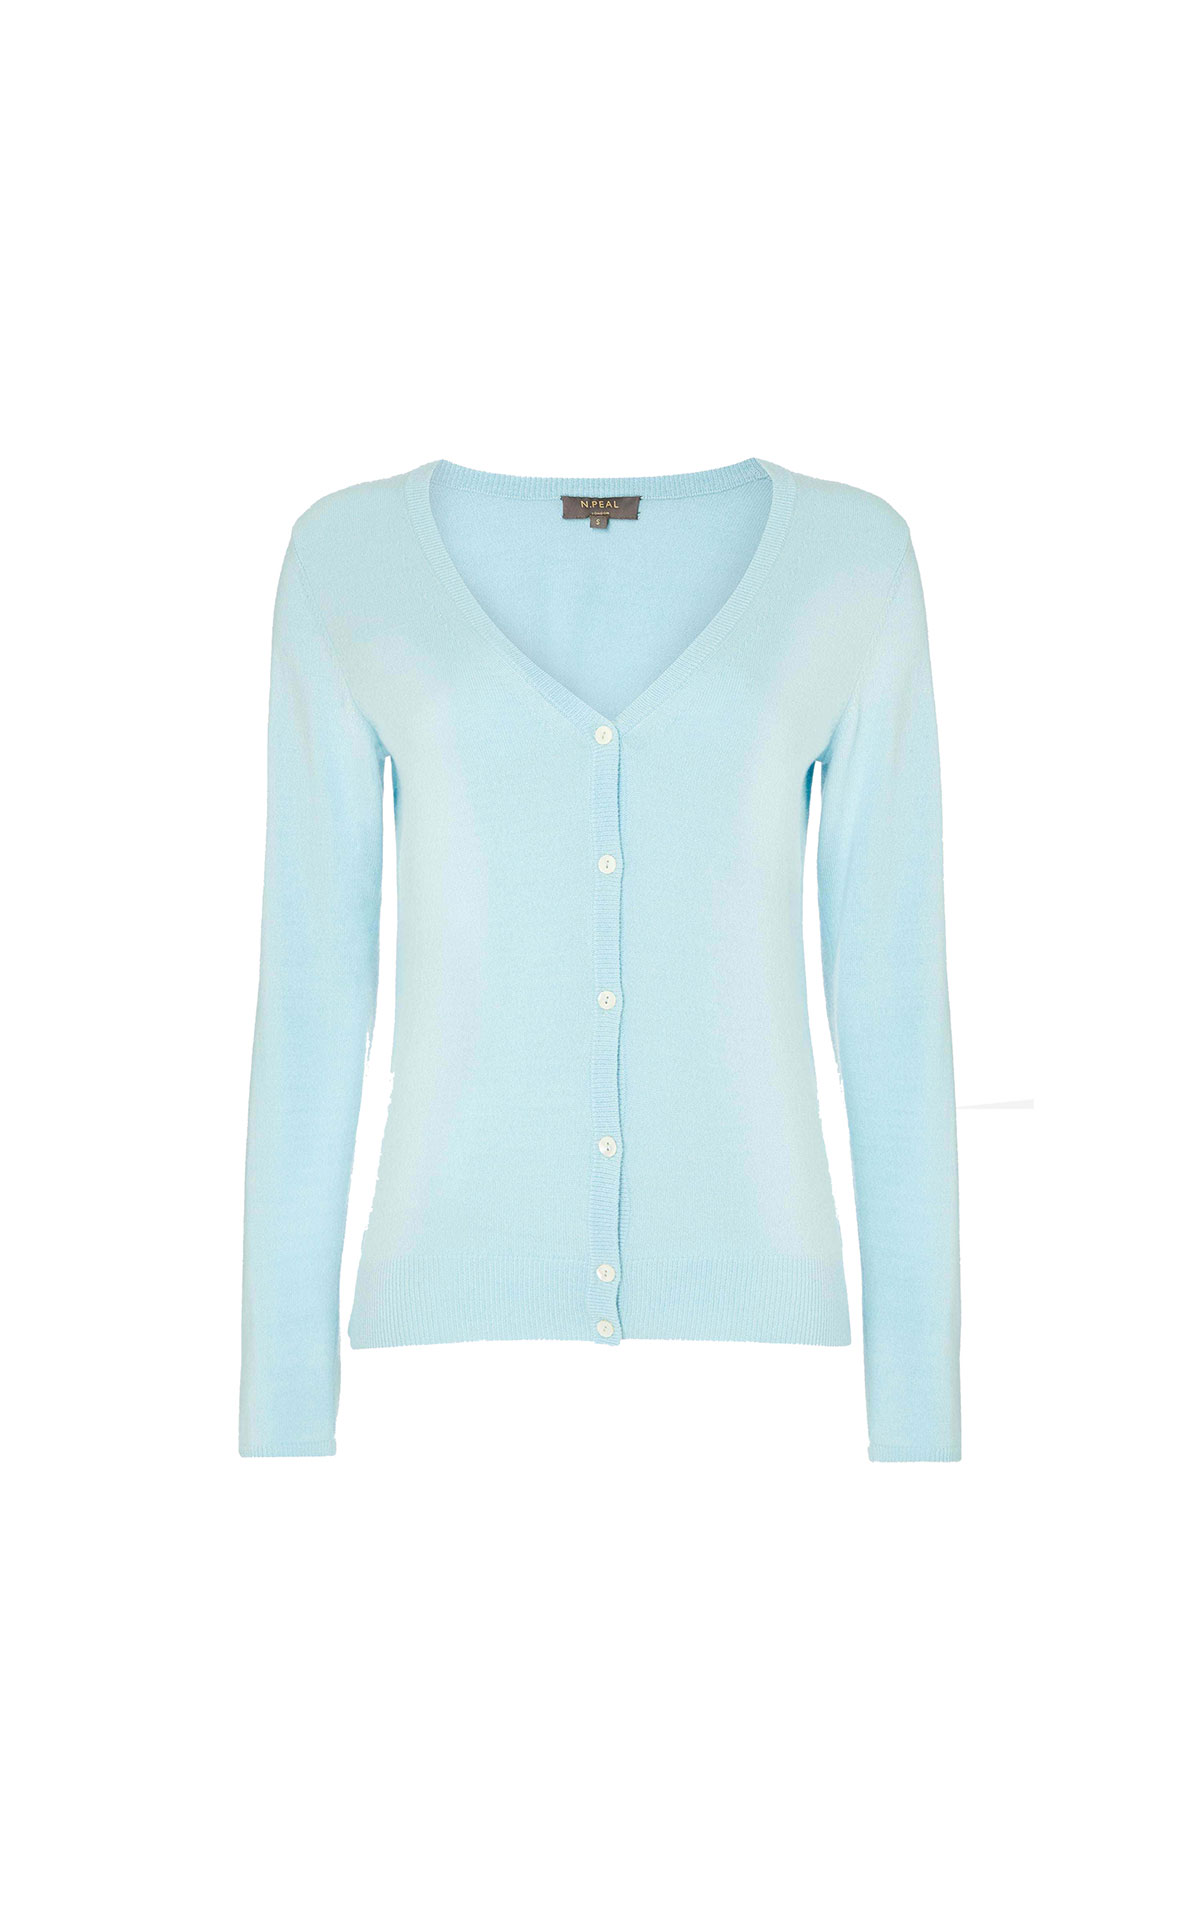 N.Peal Ladies v-neck cardigan from Bicester Village